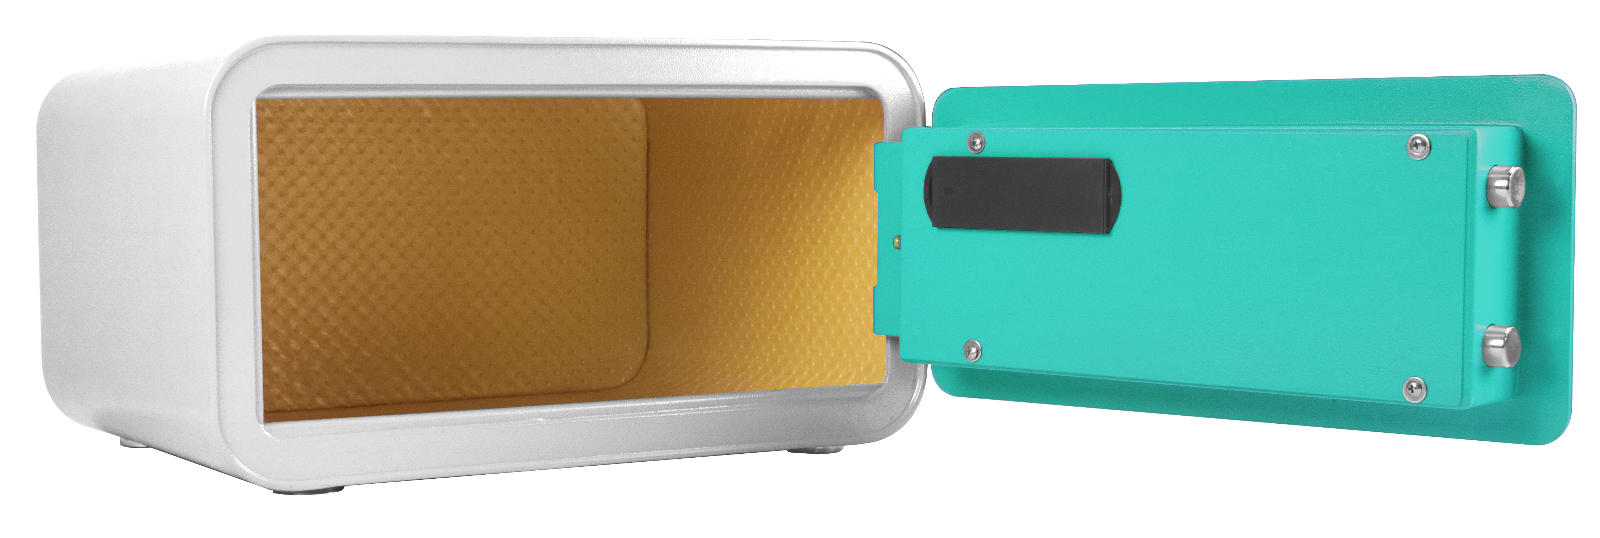 colorful personal safe